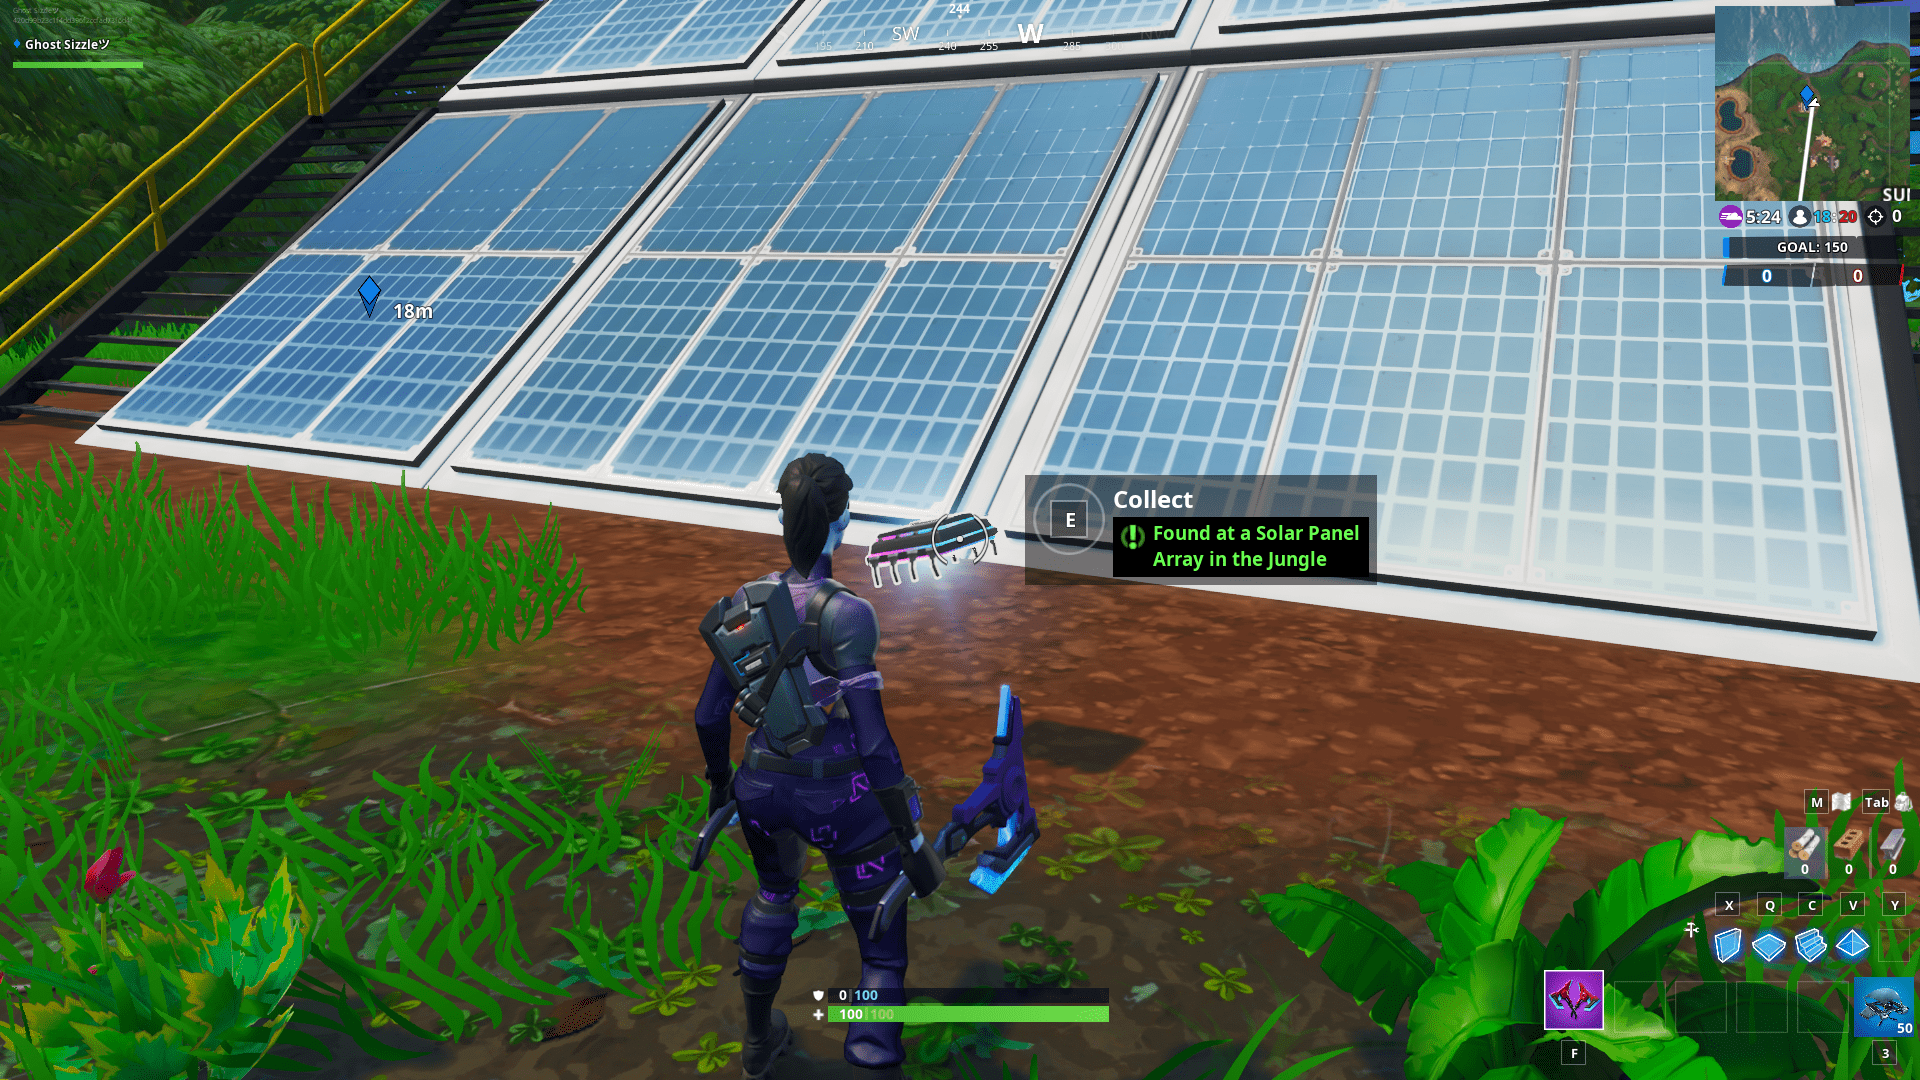 found at a solar panel array in the jungle